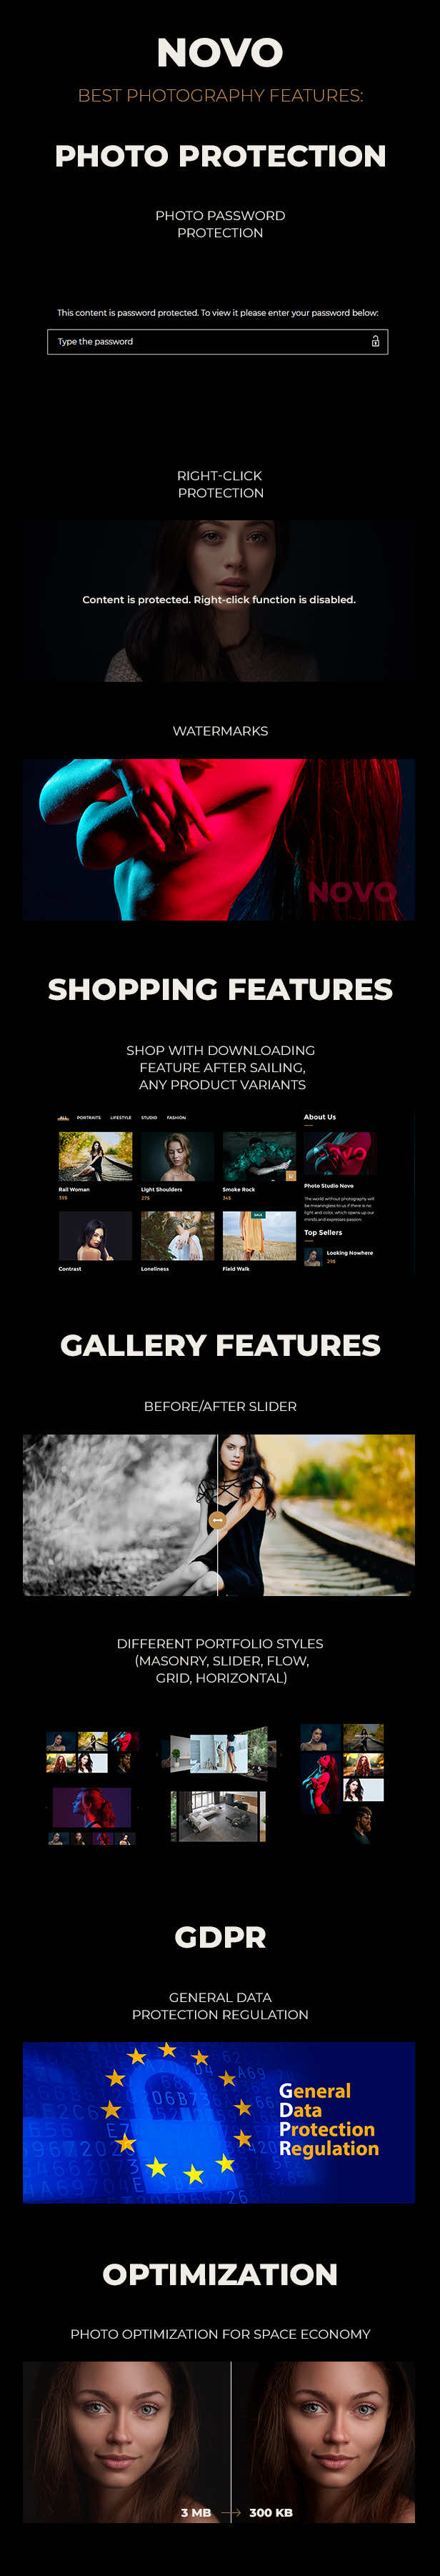 Novo v3.1.6 - Photography WordPress Theme Nulled Изображение: 4